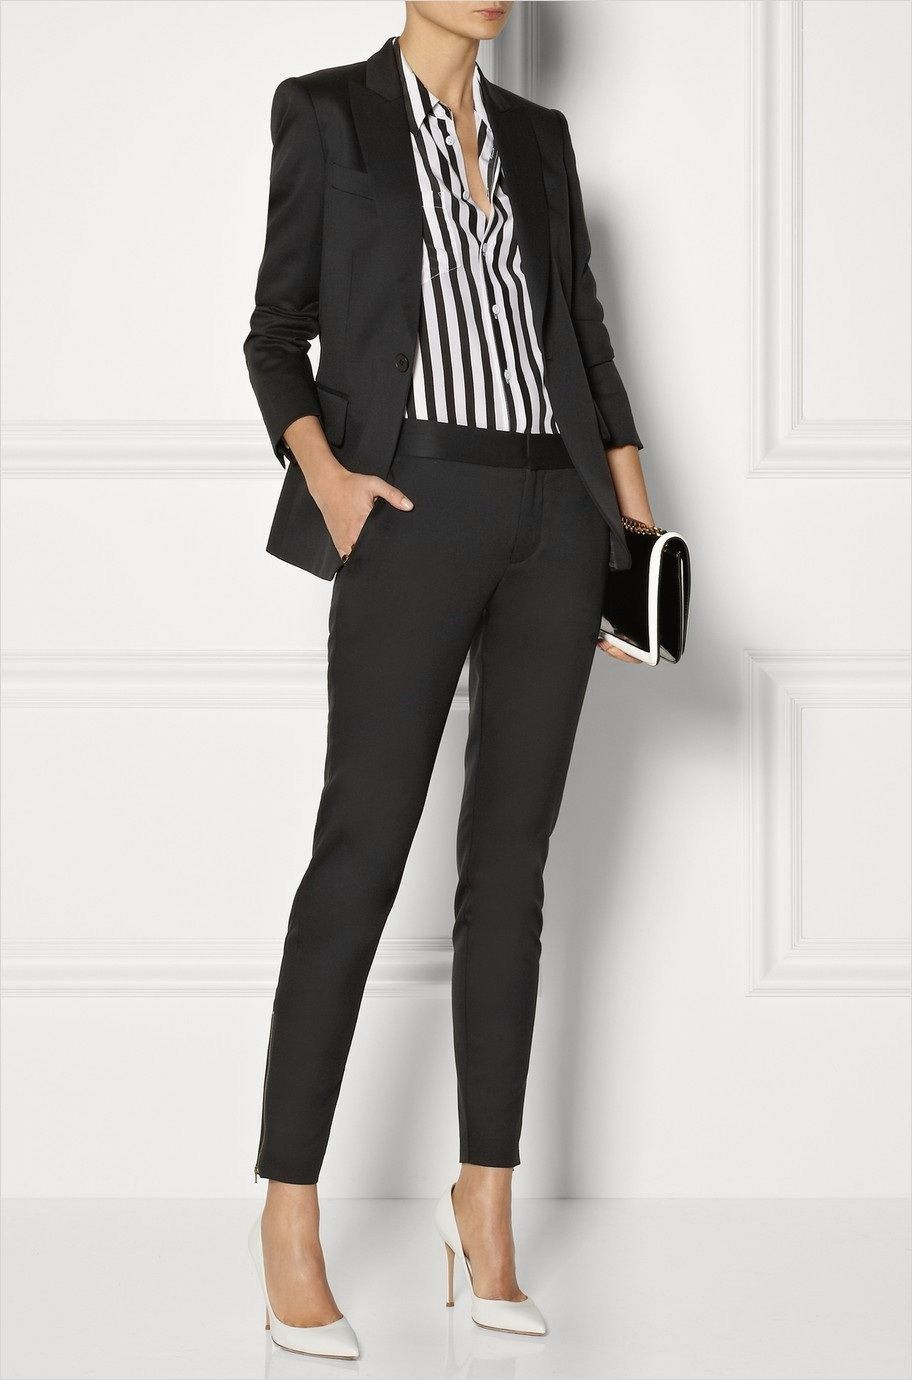 42 Adorable Edgy Business Casual for